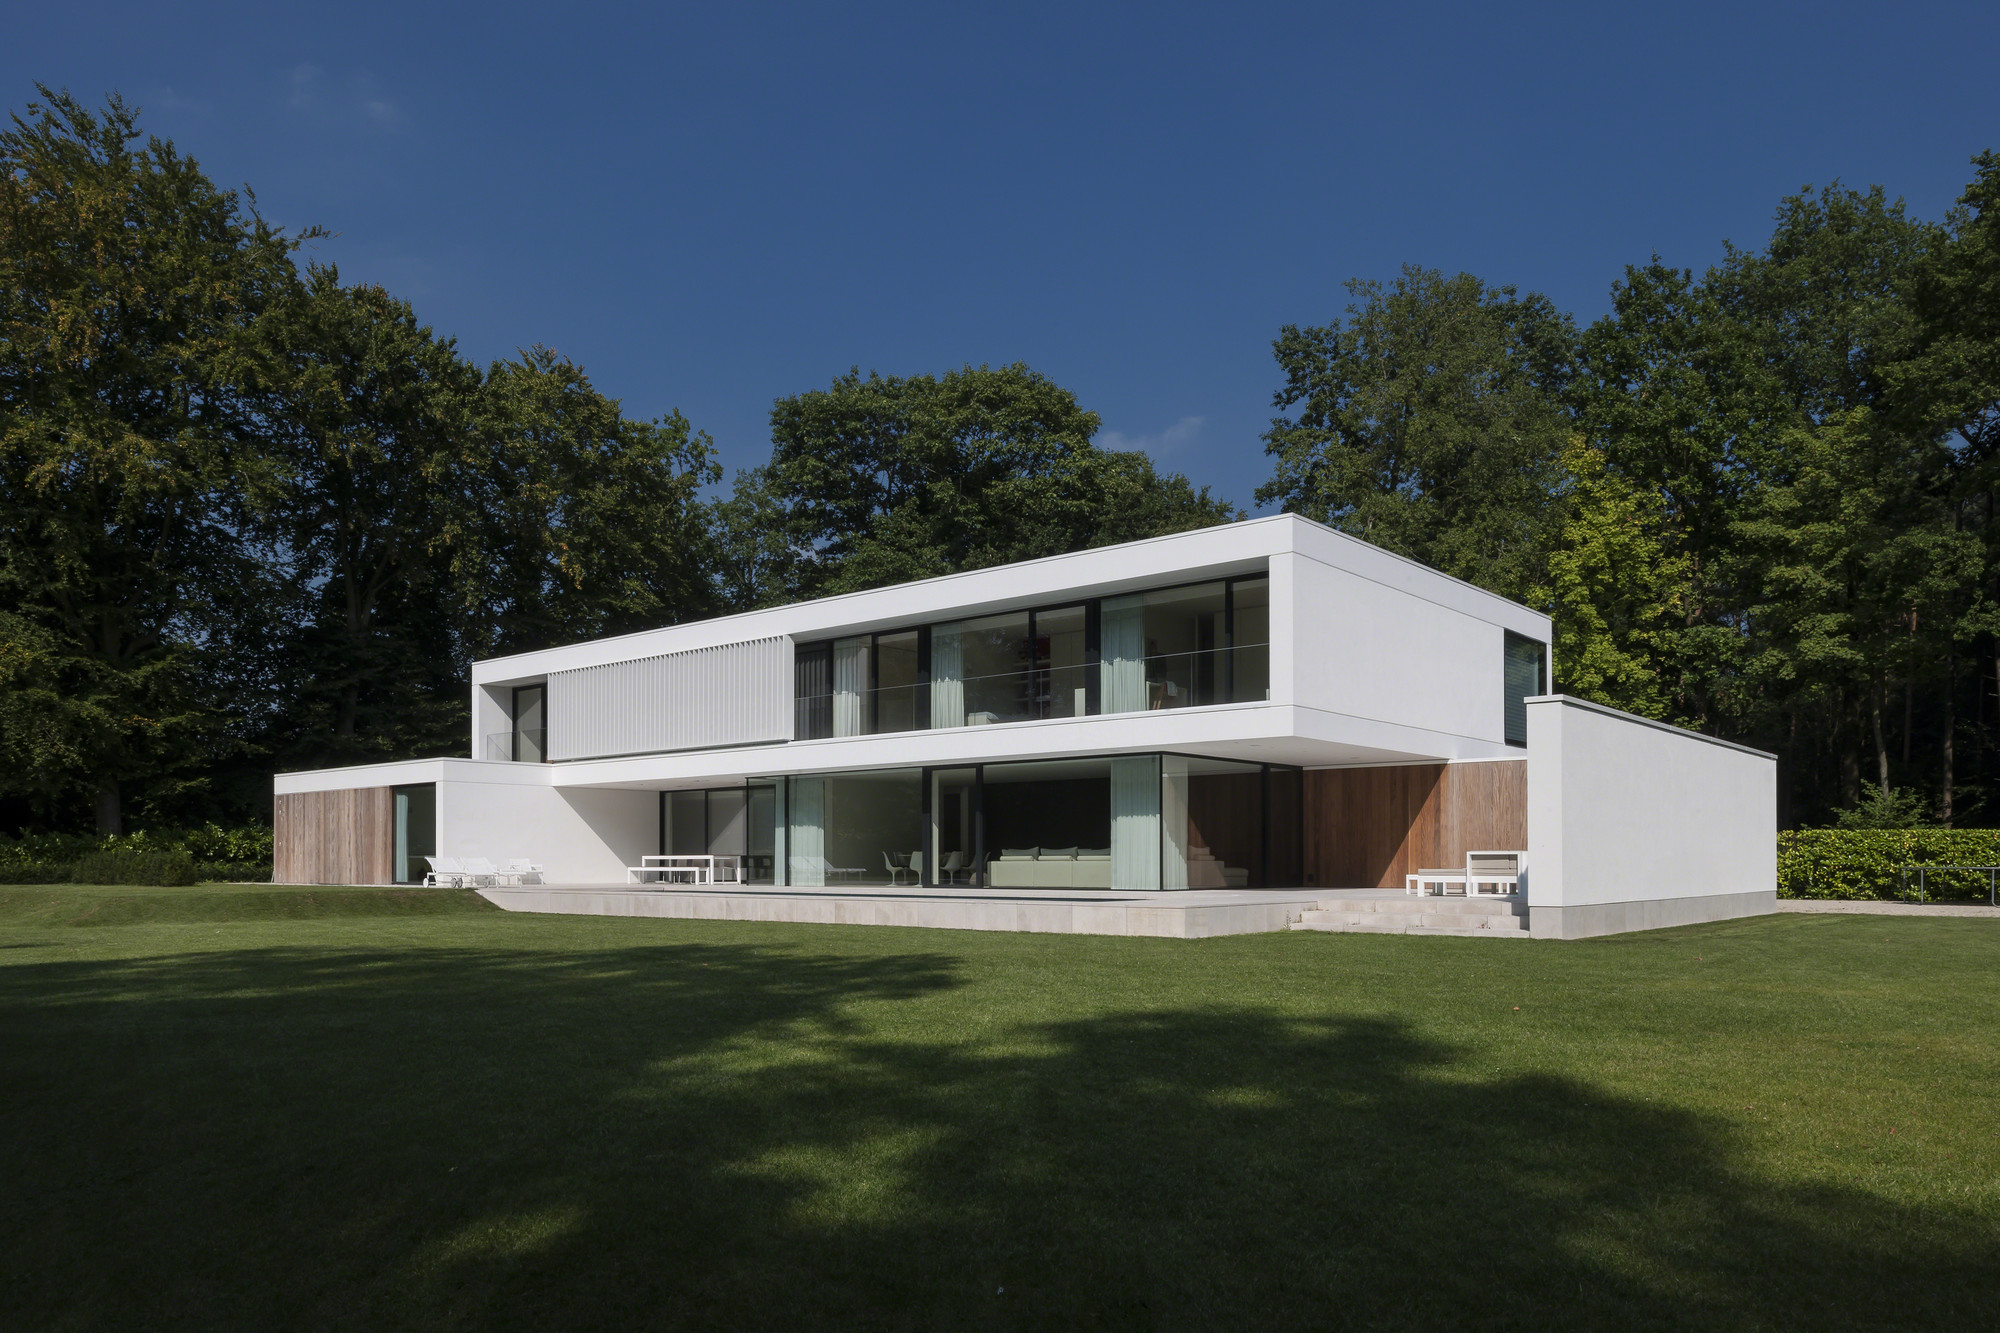 Hs residence cubyc architects archdaily for Damme interieur